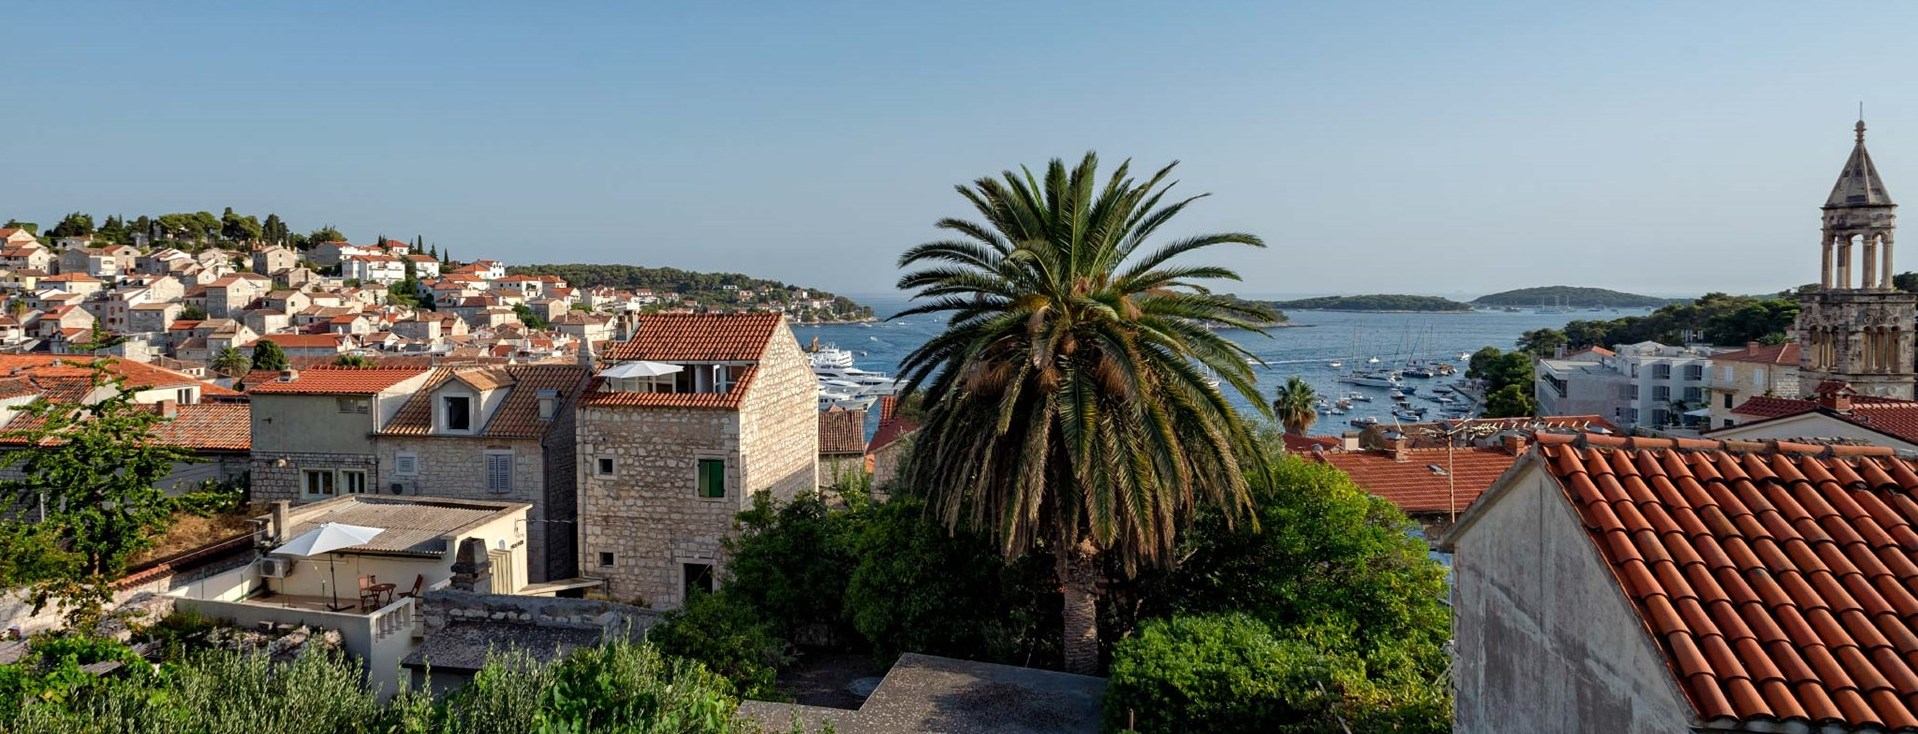 view-over-hvar-waterfront